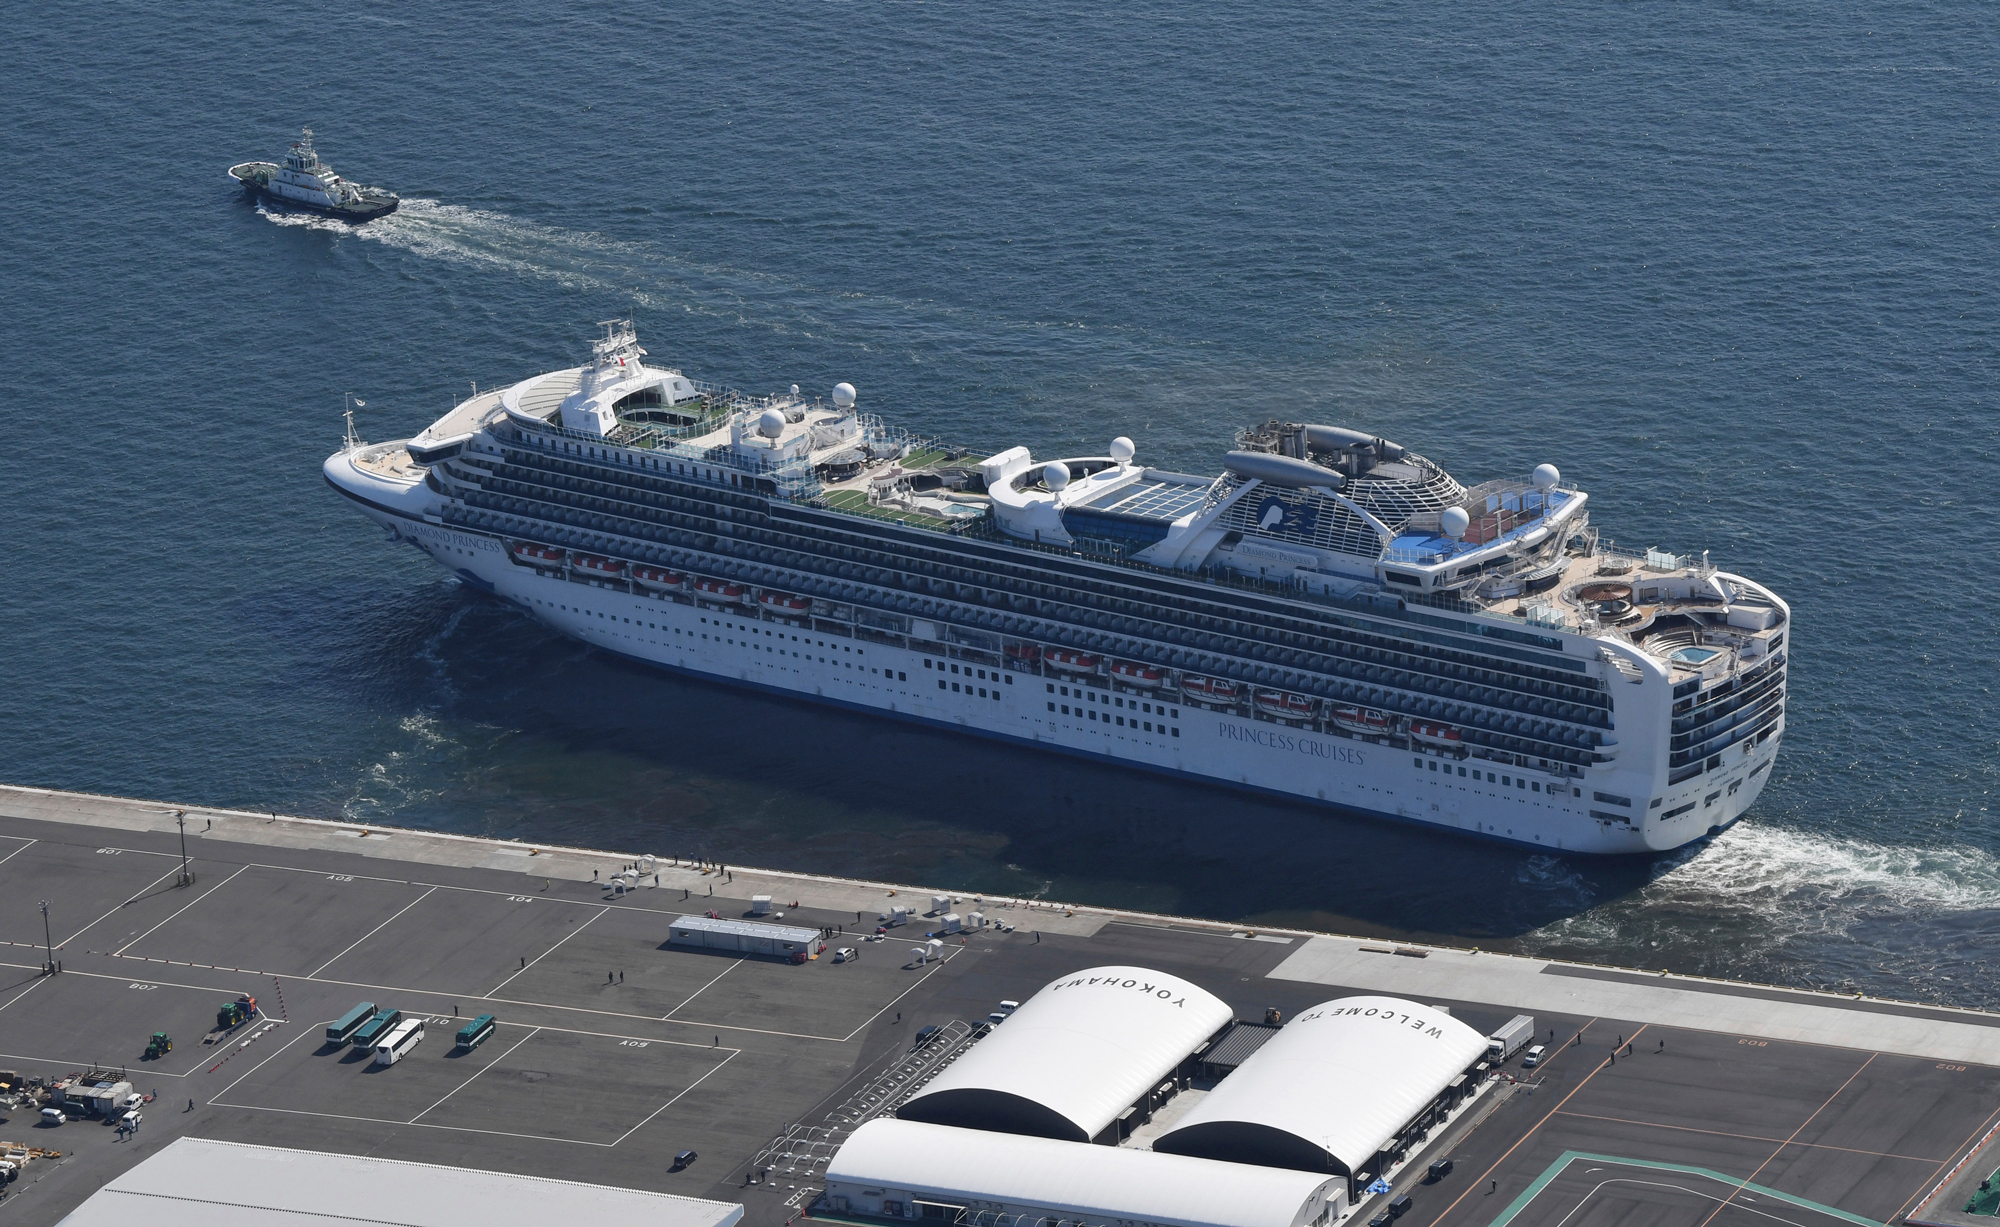 A cruise ship Diamond Princess leaves Daikoku Futo Wharf in Yokohama, Kanagawa Prefecture after being disinfected on March 25, 2020, amid the outbreak of a new coronavirus. The virus-hit cruise ship accounted for 712 people who have been infected with the disease and 10 died. ( The Yomiuri Shimbun via AP Images )